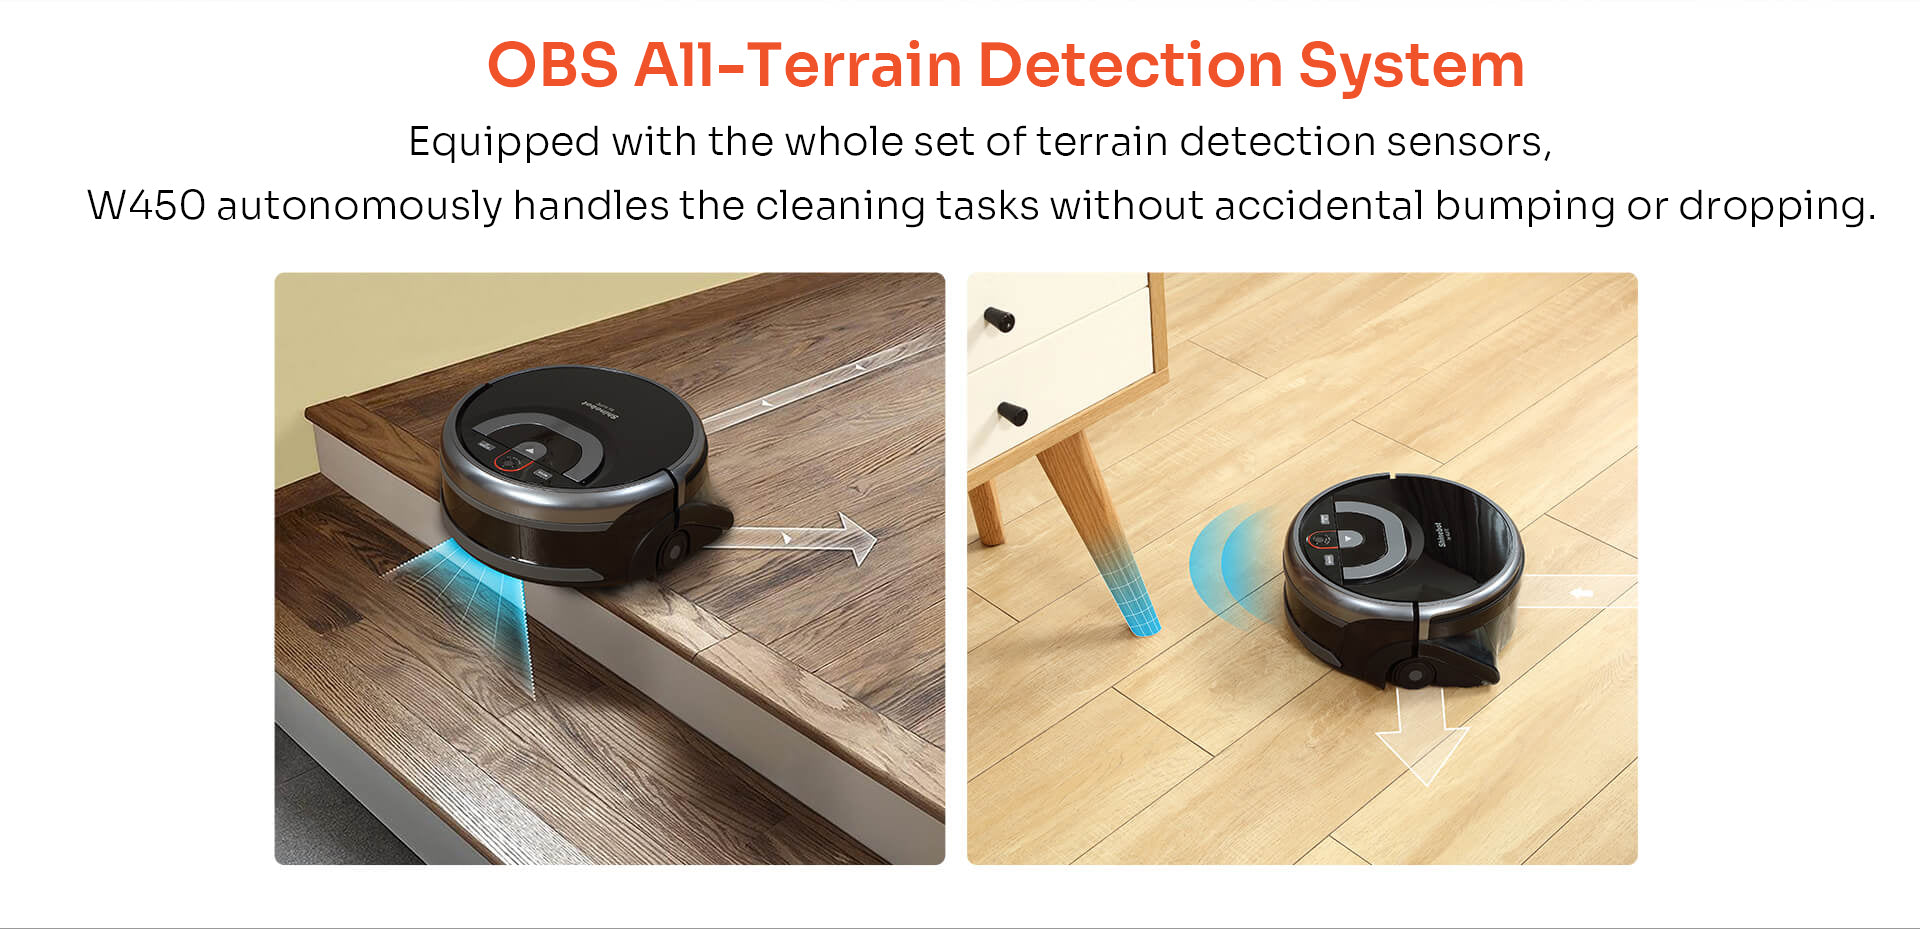 OBS All-Terrain Detection System